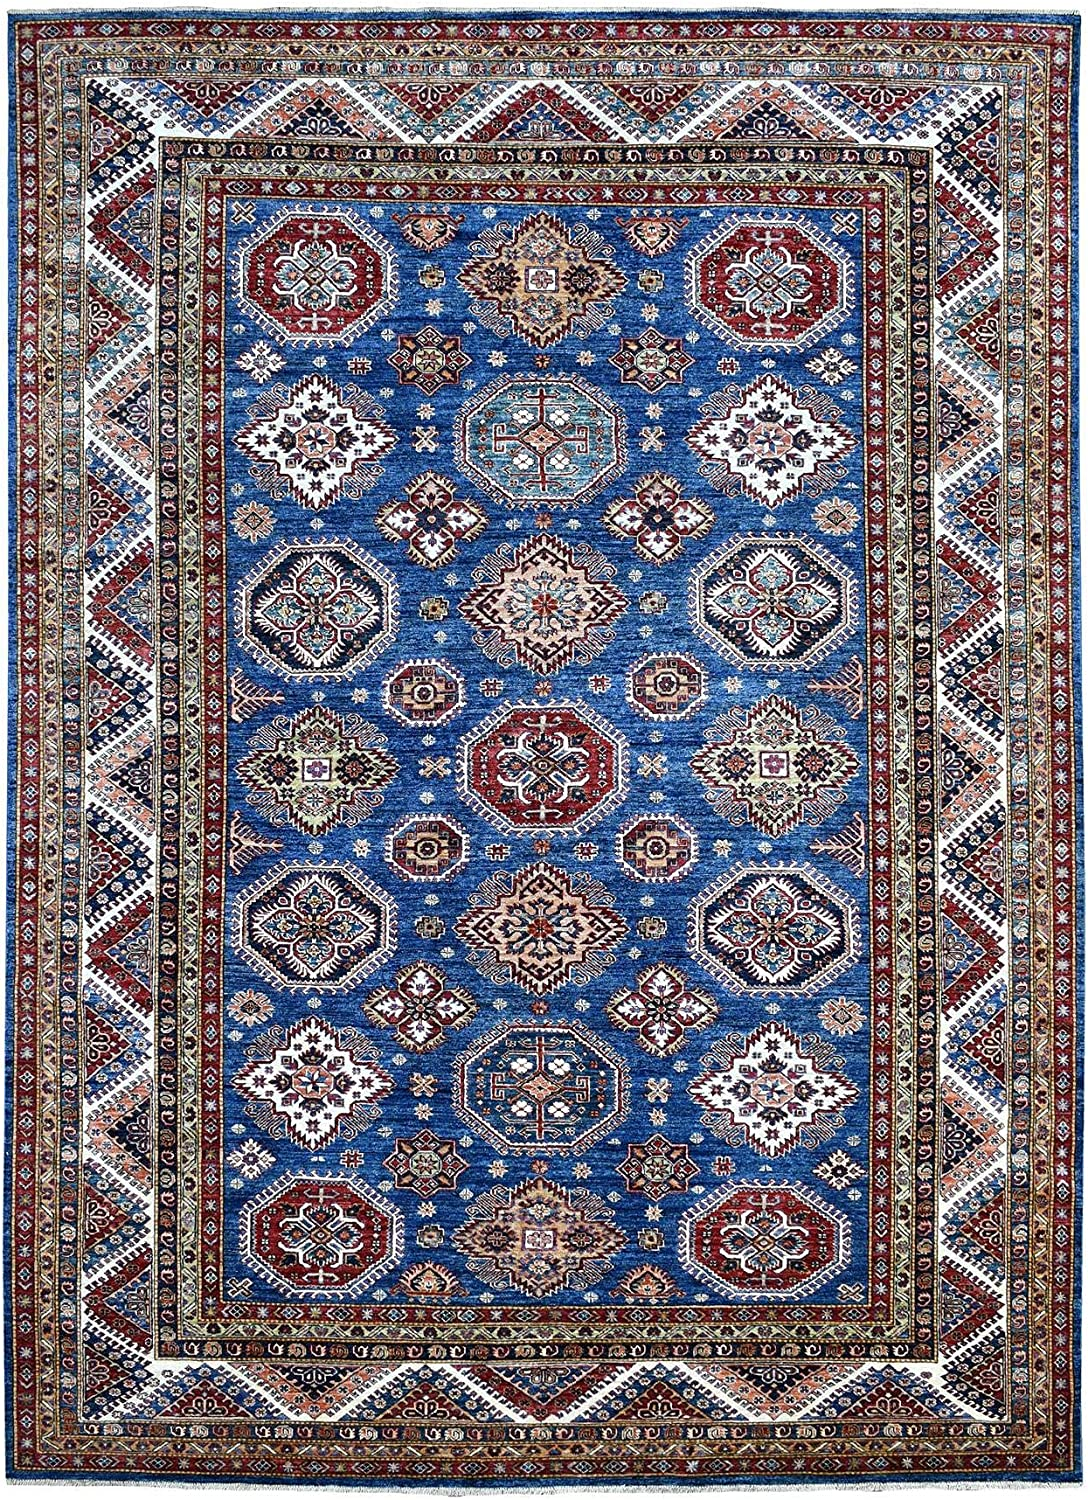 Shahbanu Rugs Denim Blue with 1 year warranty Pop Woo of Hand Pure Max 65% OFF Color Knotted